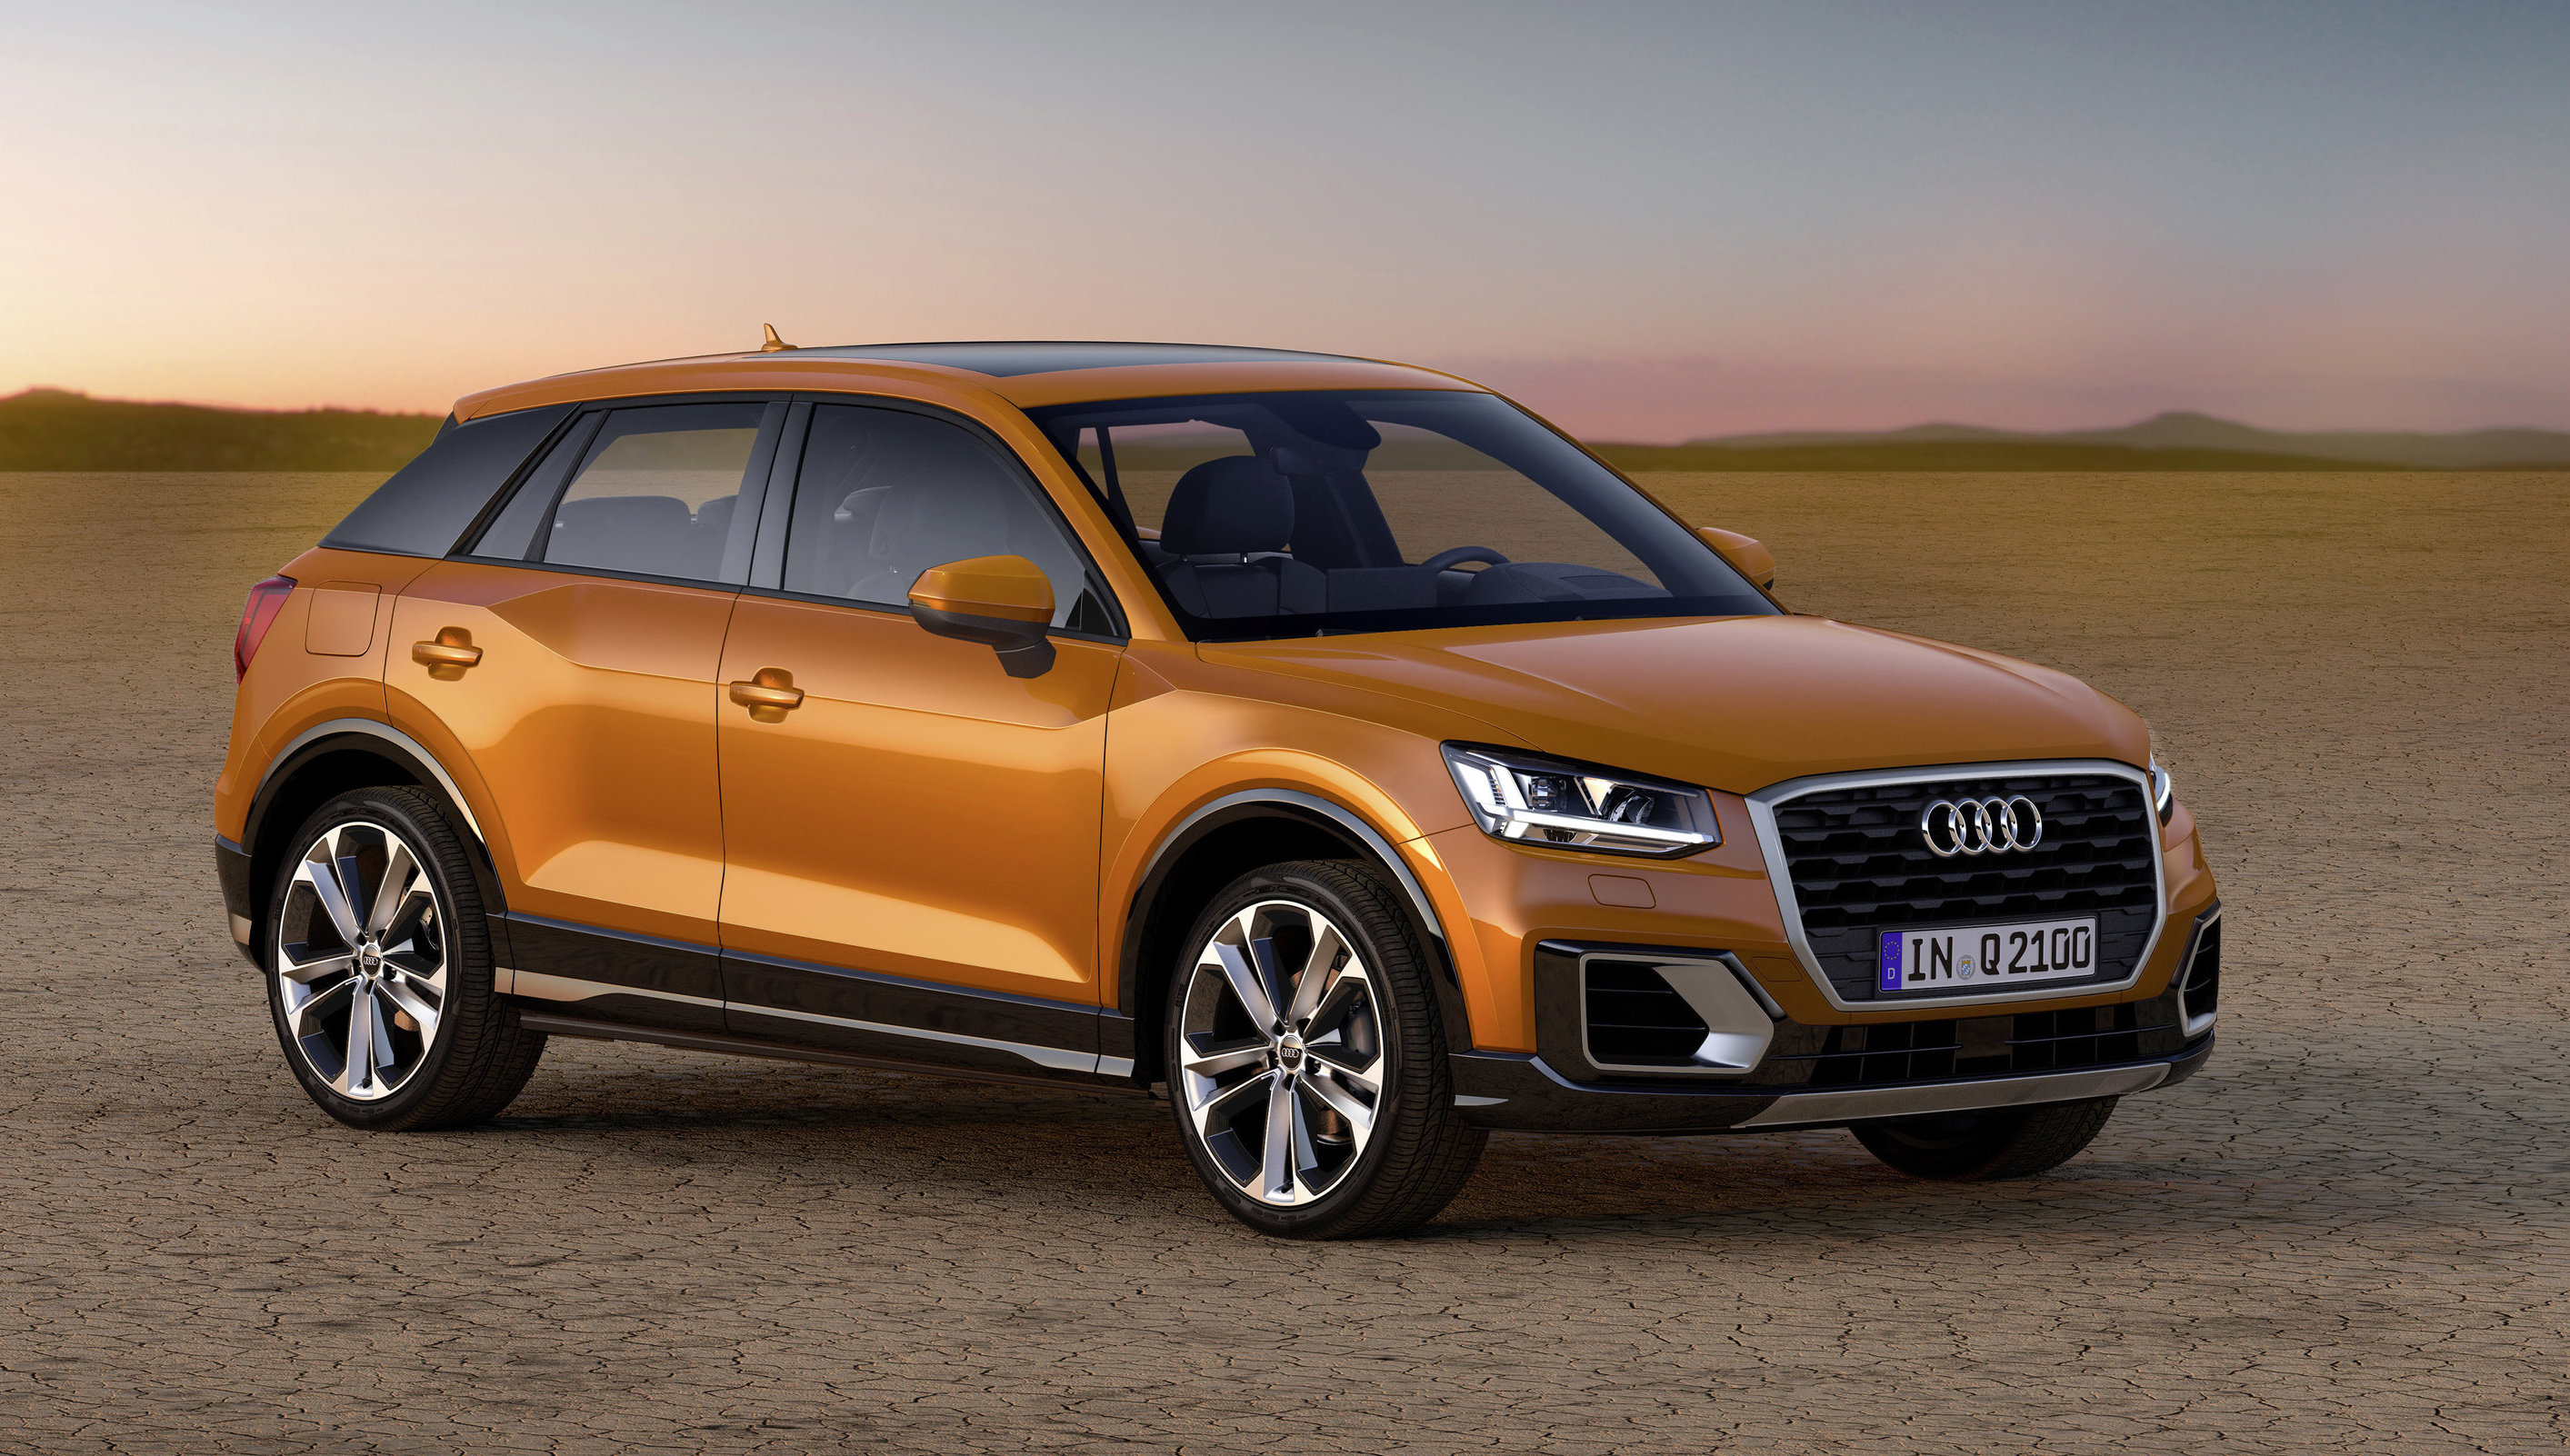 2017 audi q2 revealed australian launch confirmed photos caradvice. Black Bedroom Furniture Sets. Home Design Ideas